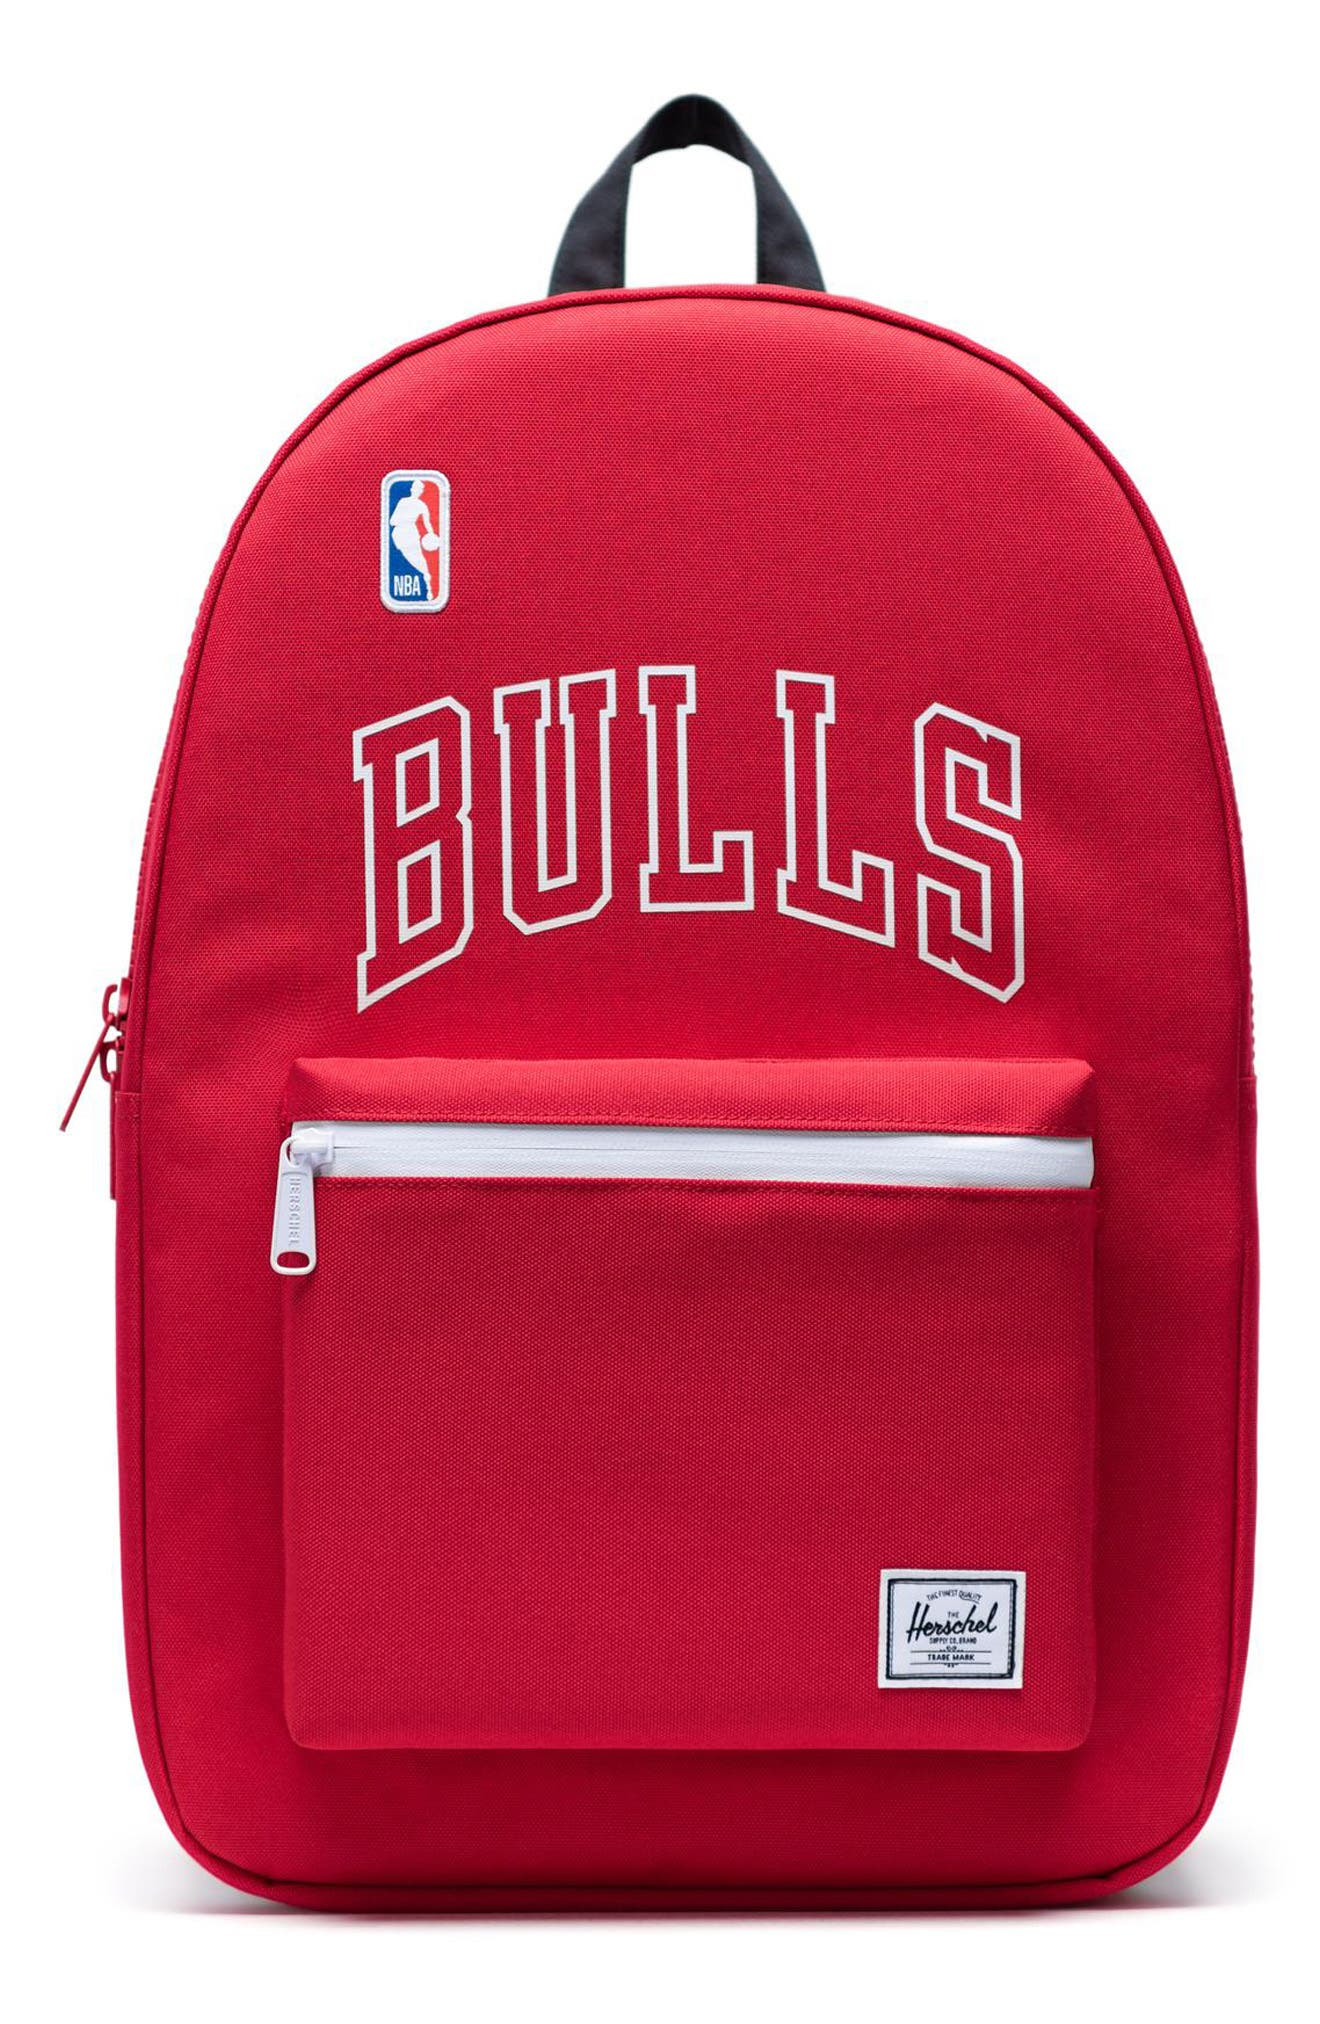 Herschel Supply Co. Settlement Nba Champions 15-Inch Laptop Backpack - Red